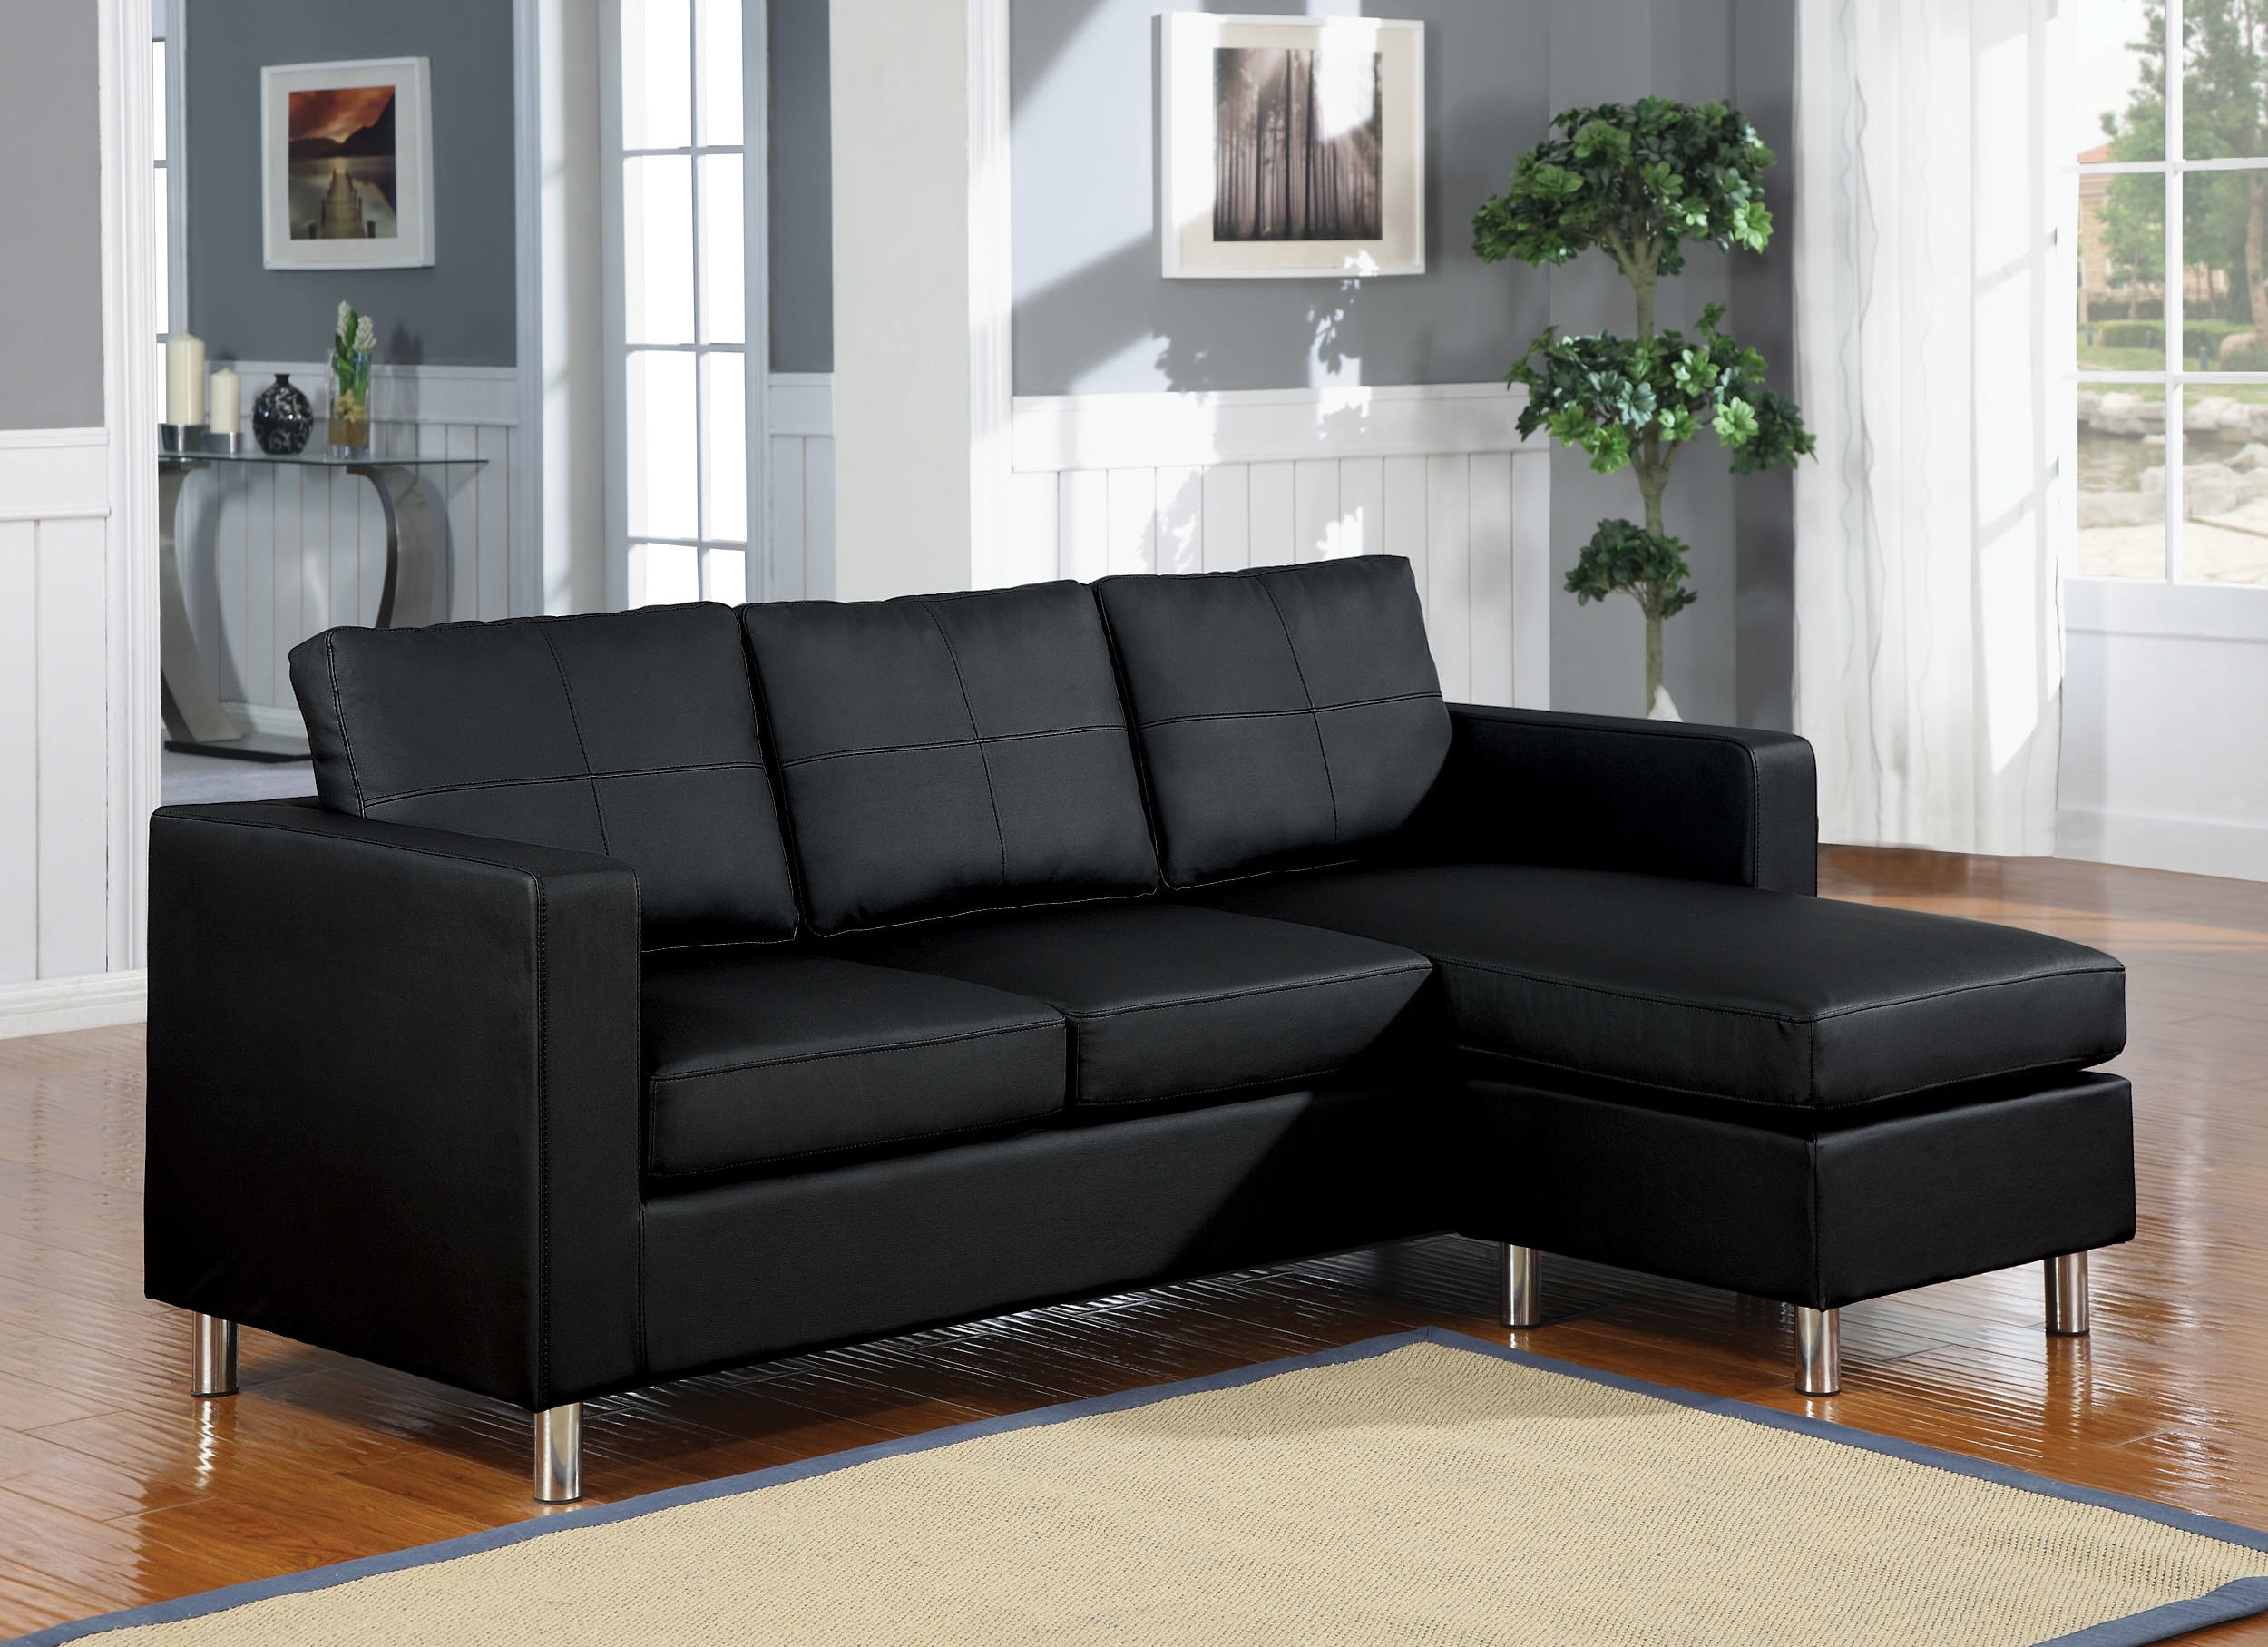 Sofa : Small Sectional Sofa With Chaise Lounge Suede Sectional Throughout Sectional Sofas At Walmart (View 8 of 15)